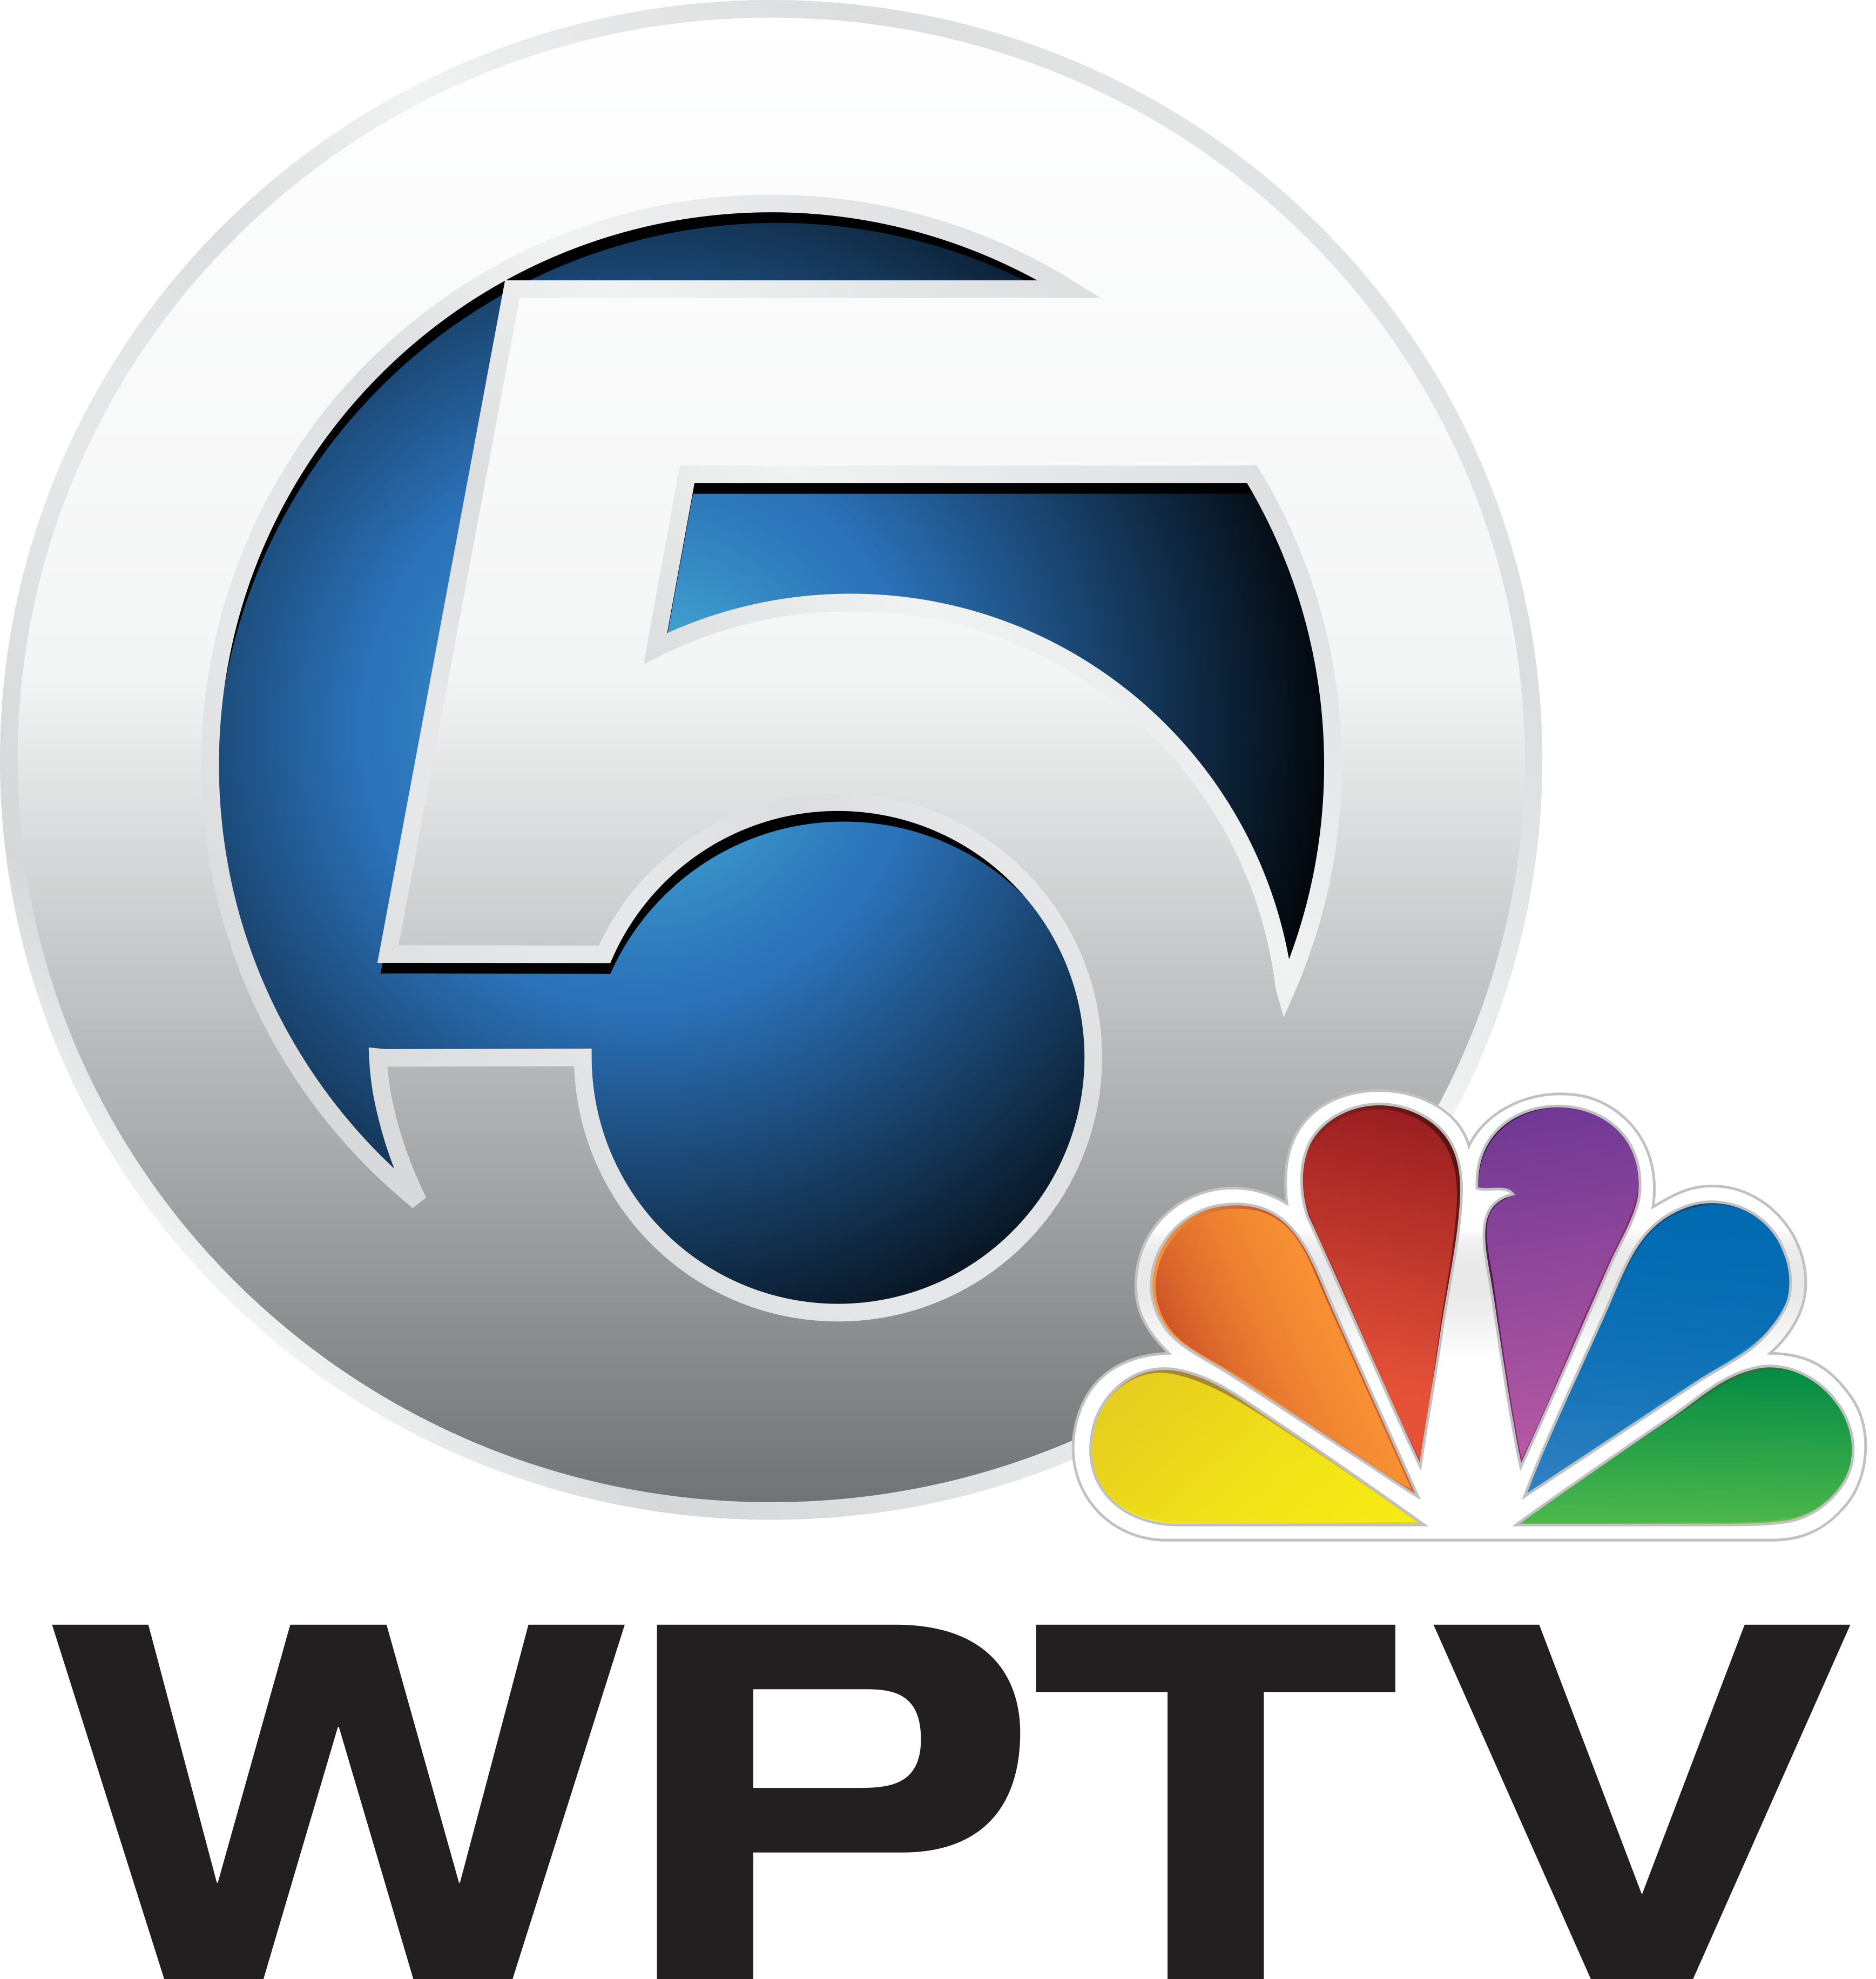 Venture Construction Group of Florida Featured on WPTV Channel 5 NBC West Palm Beach to Discuss Boca Raton Fundraising Event